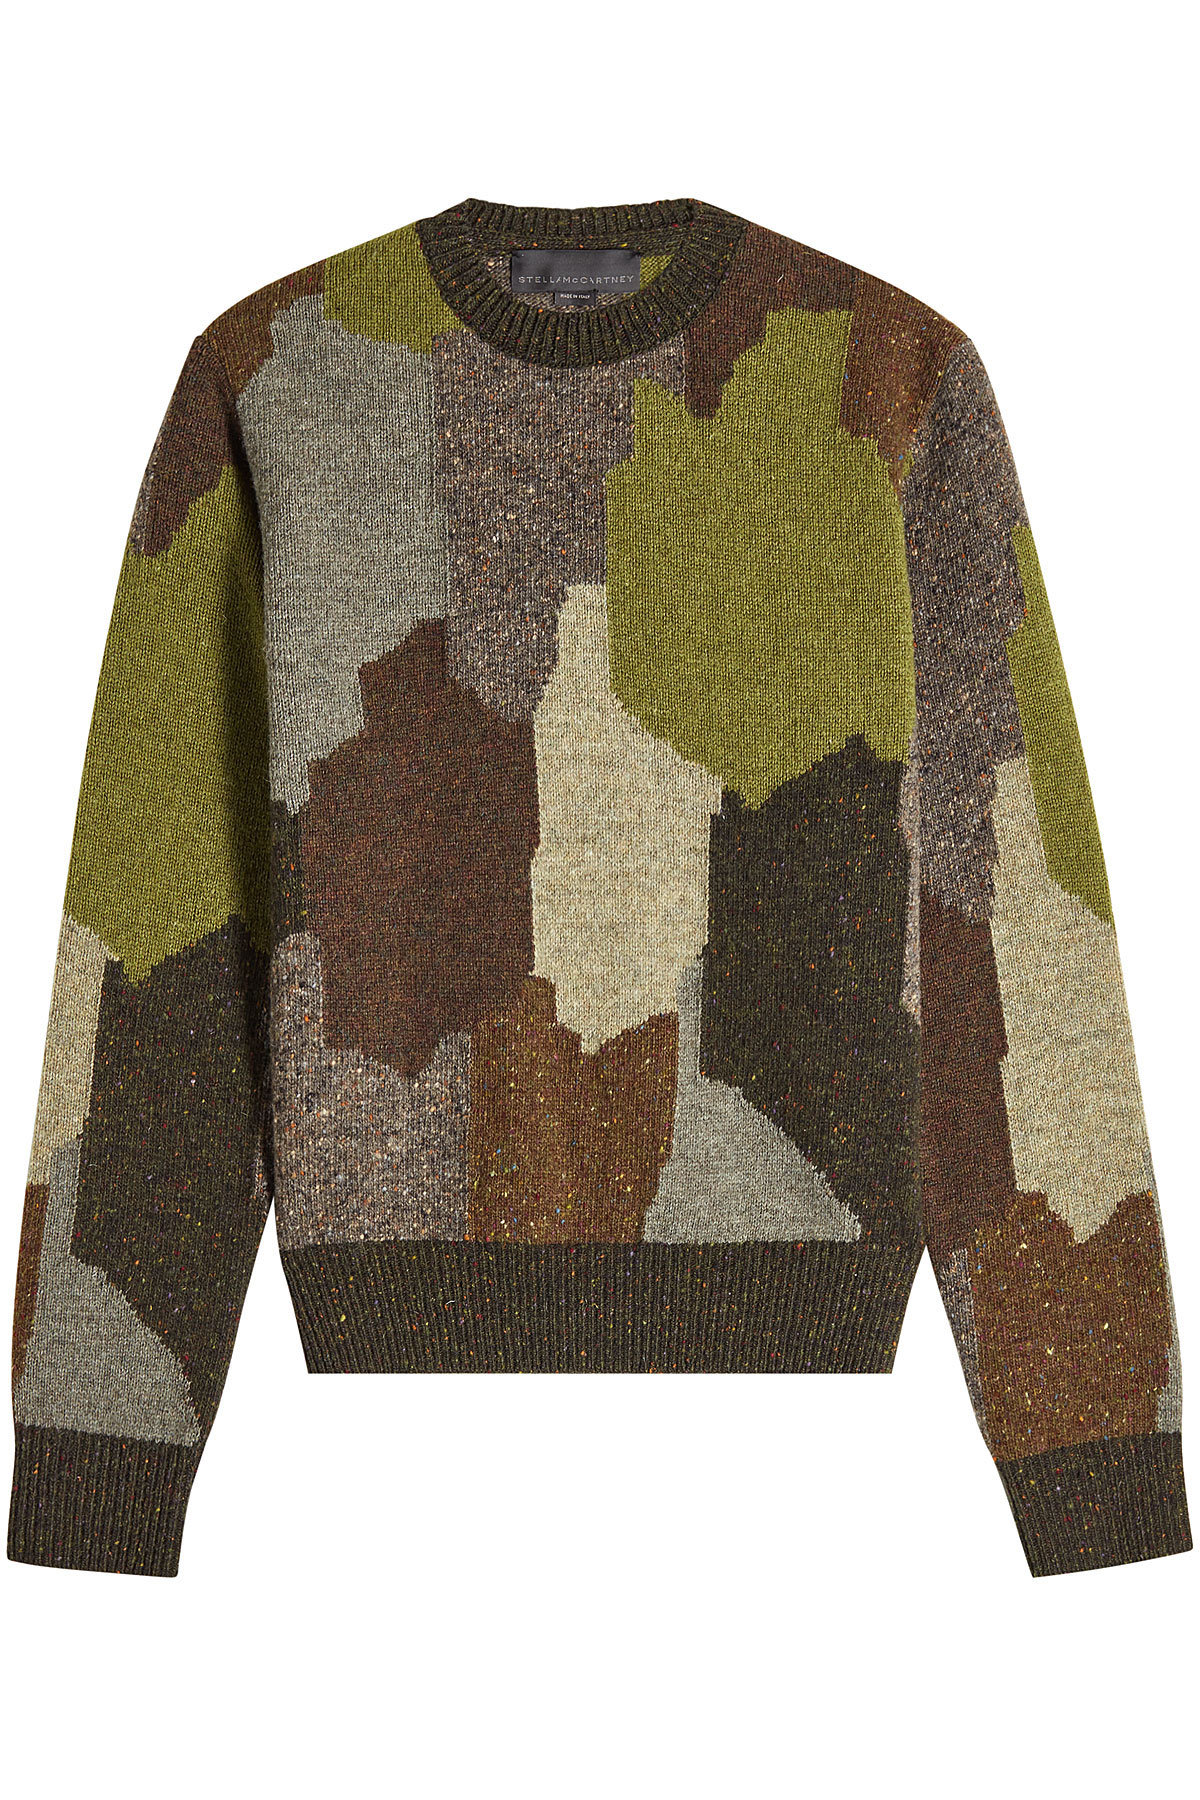 Virgin Wool Pullover | STELLA MCCARTNEY